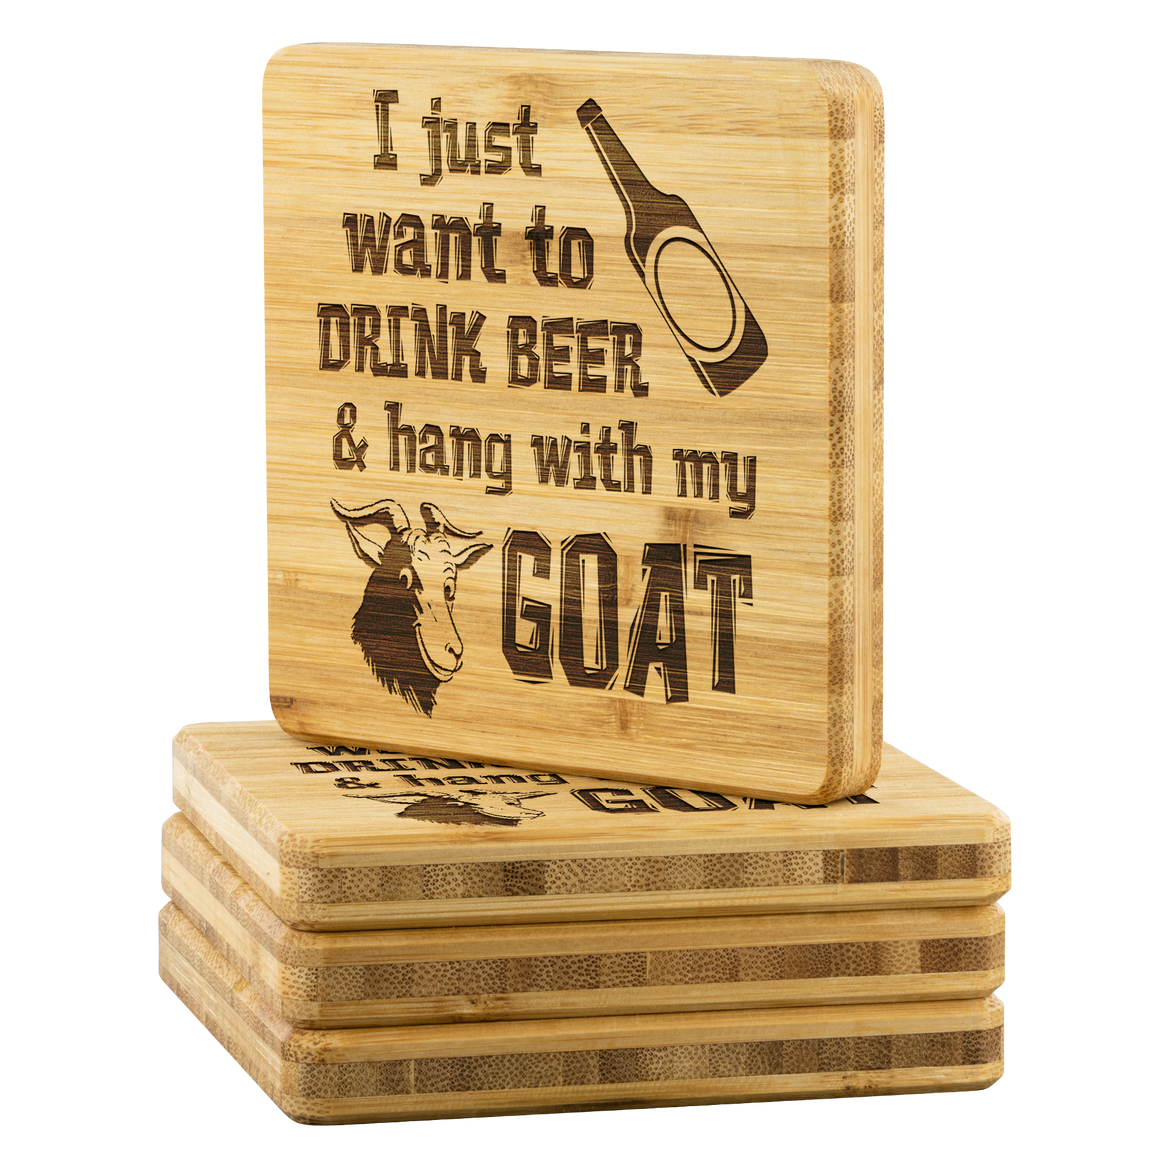 Goat Bamboo Coater - I just want to drink beer and hang with my goat